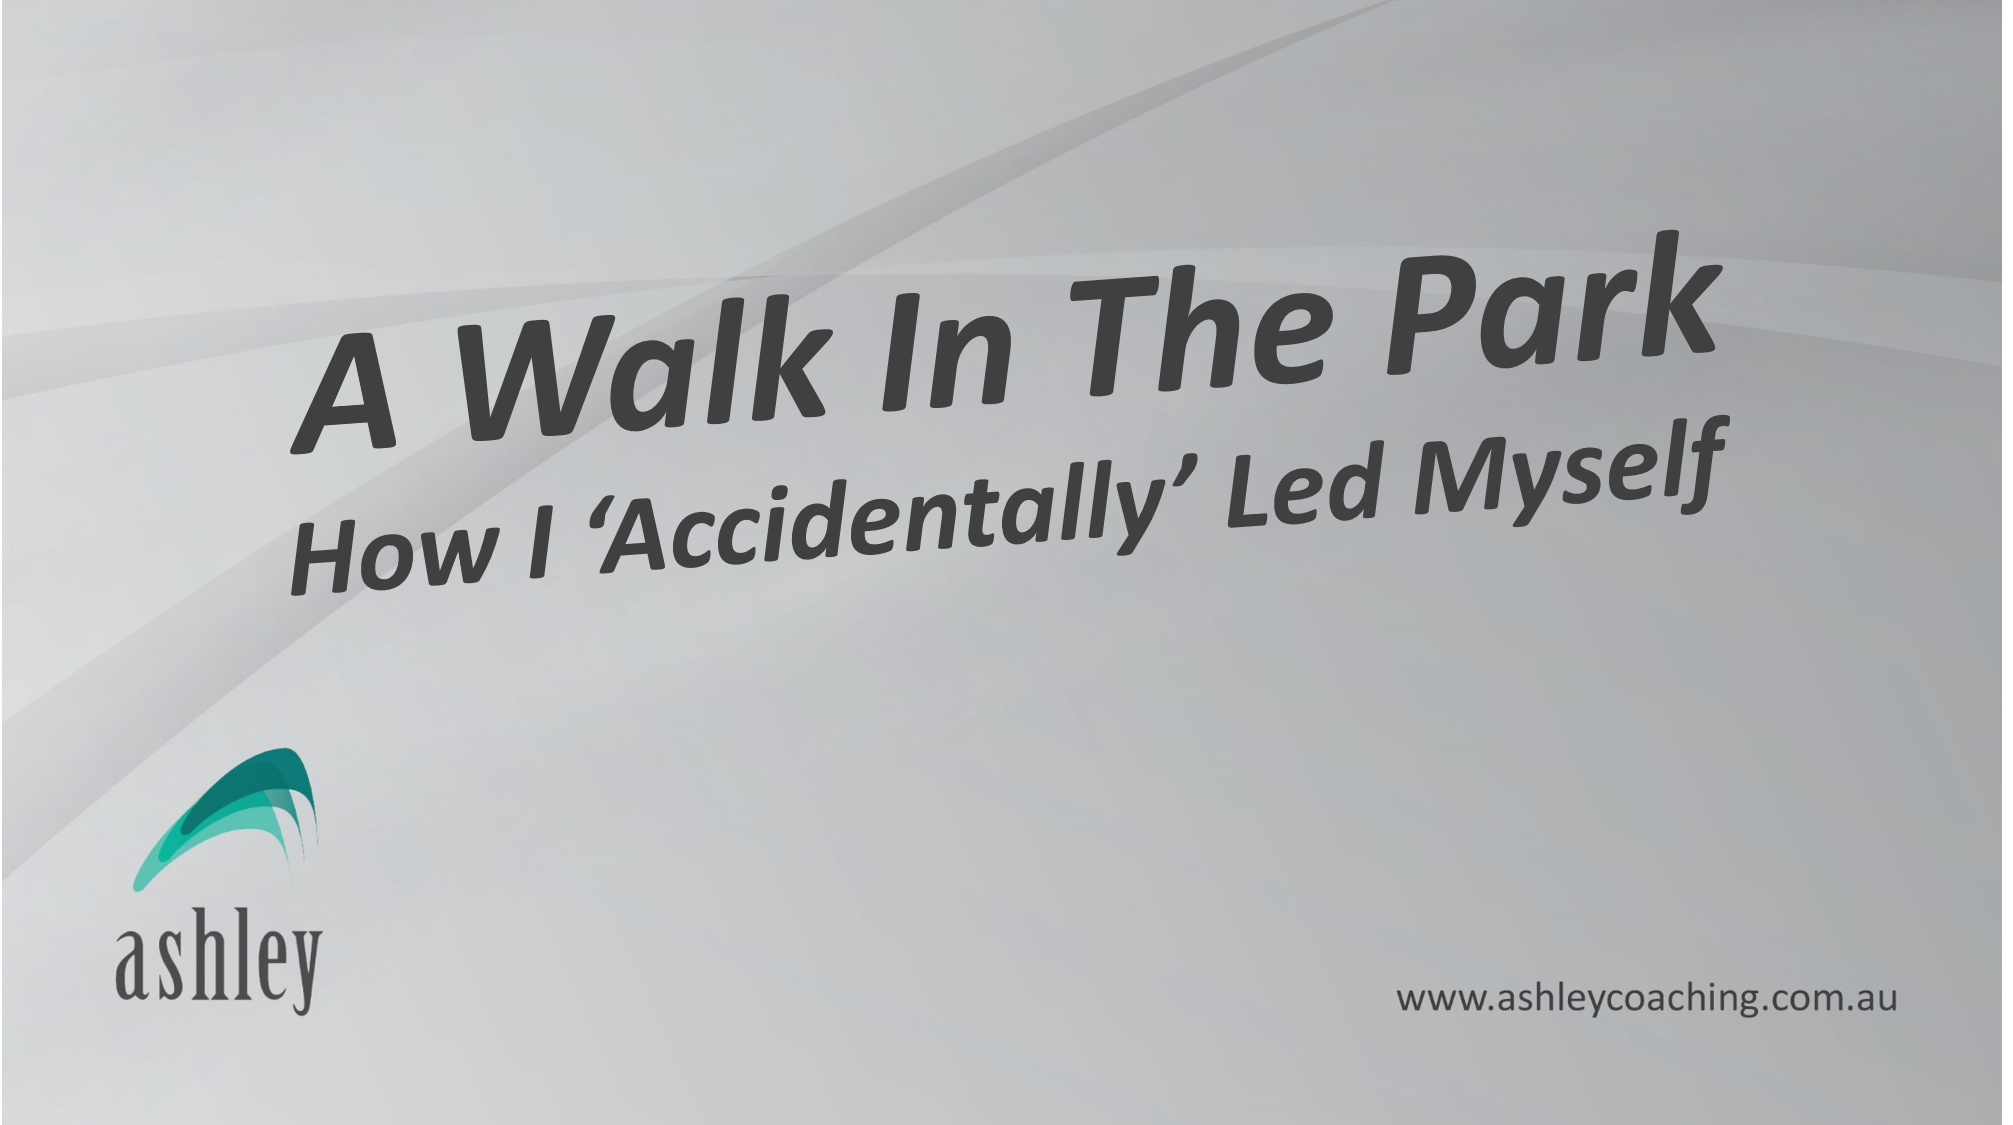 A Walk In The Park: How I 'Accidentally' Led Myself